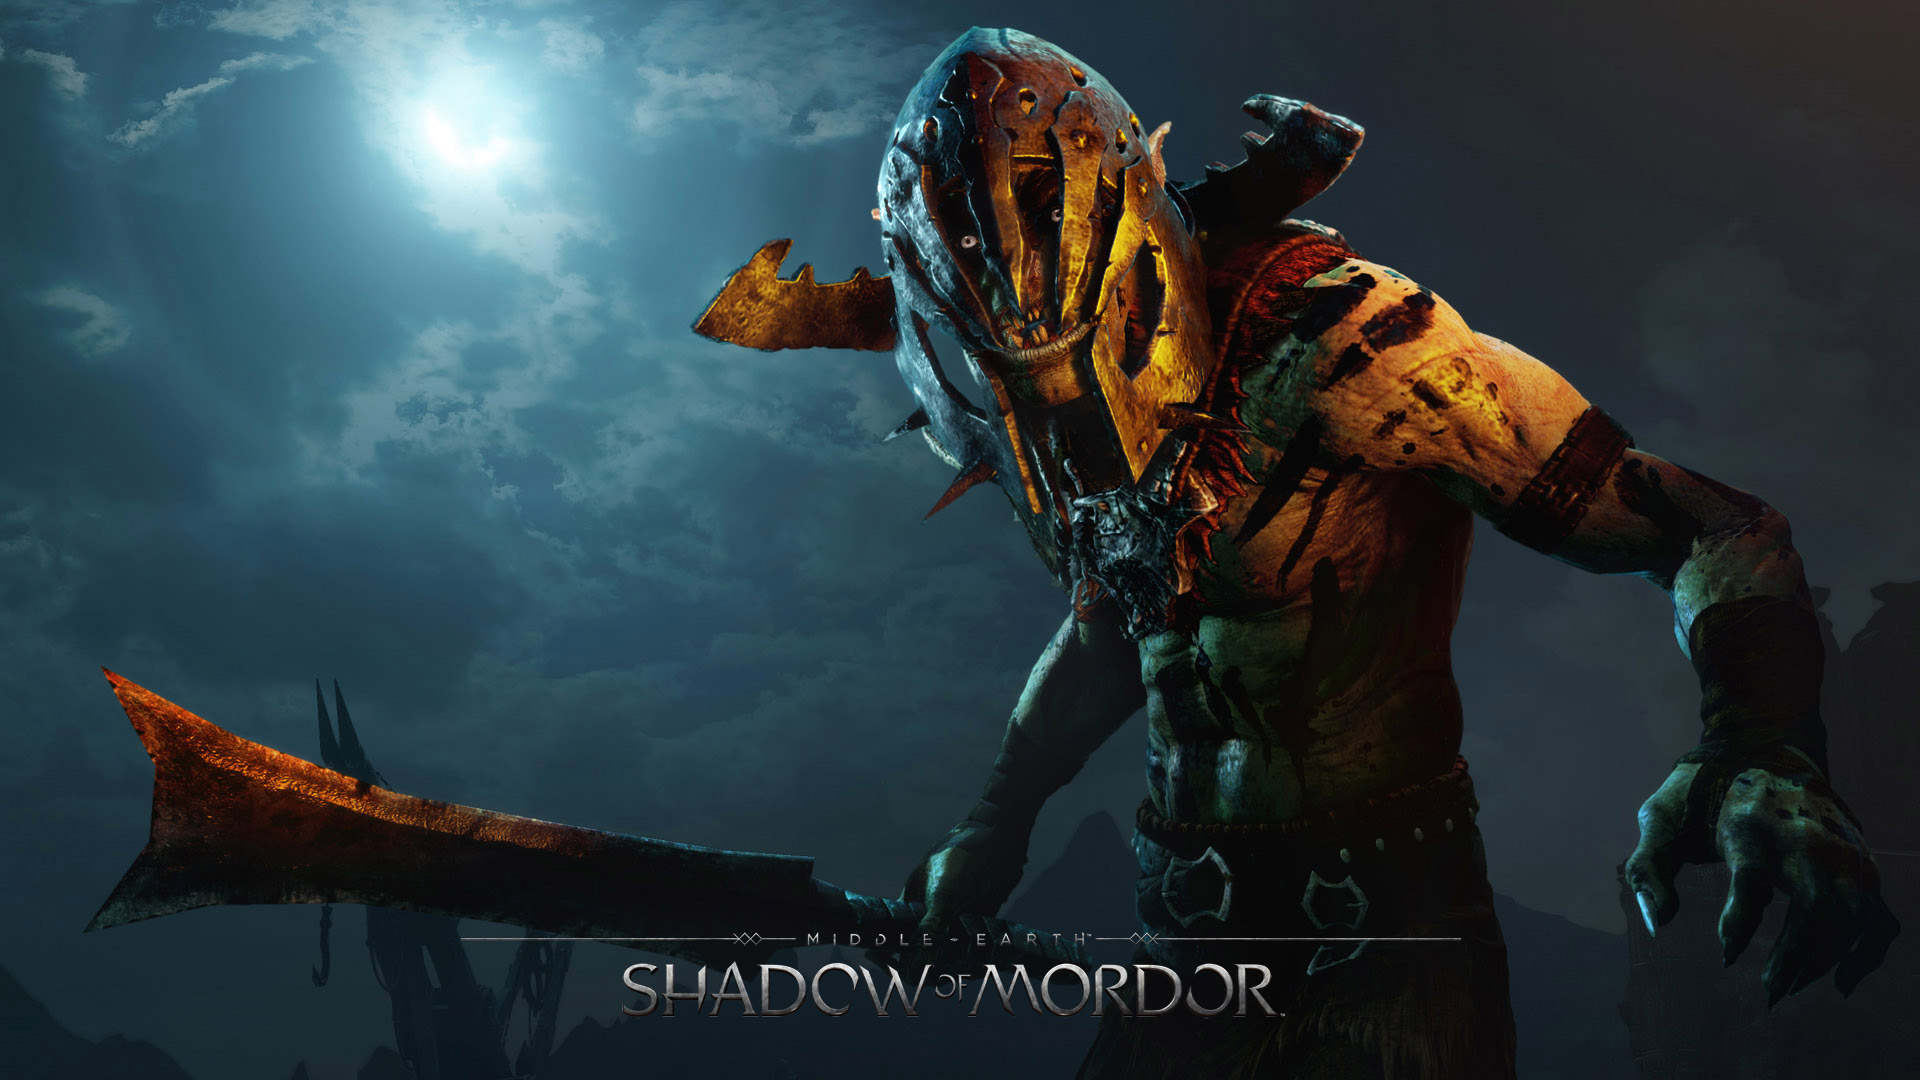 Free Middle-earth: Shadow of Mordor Wallpaper in 1920x1080